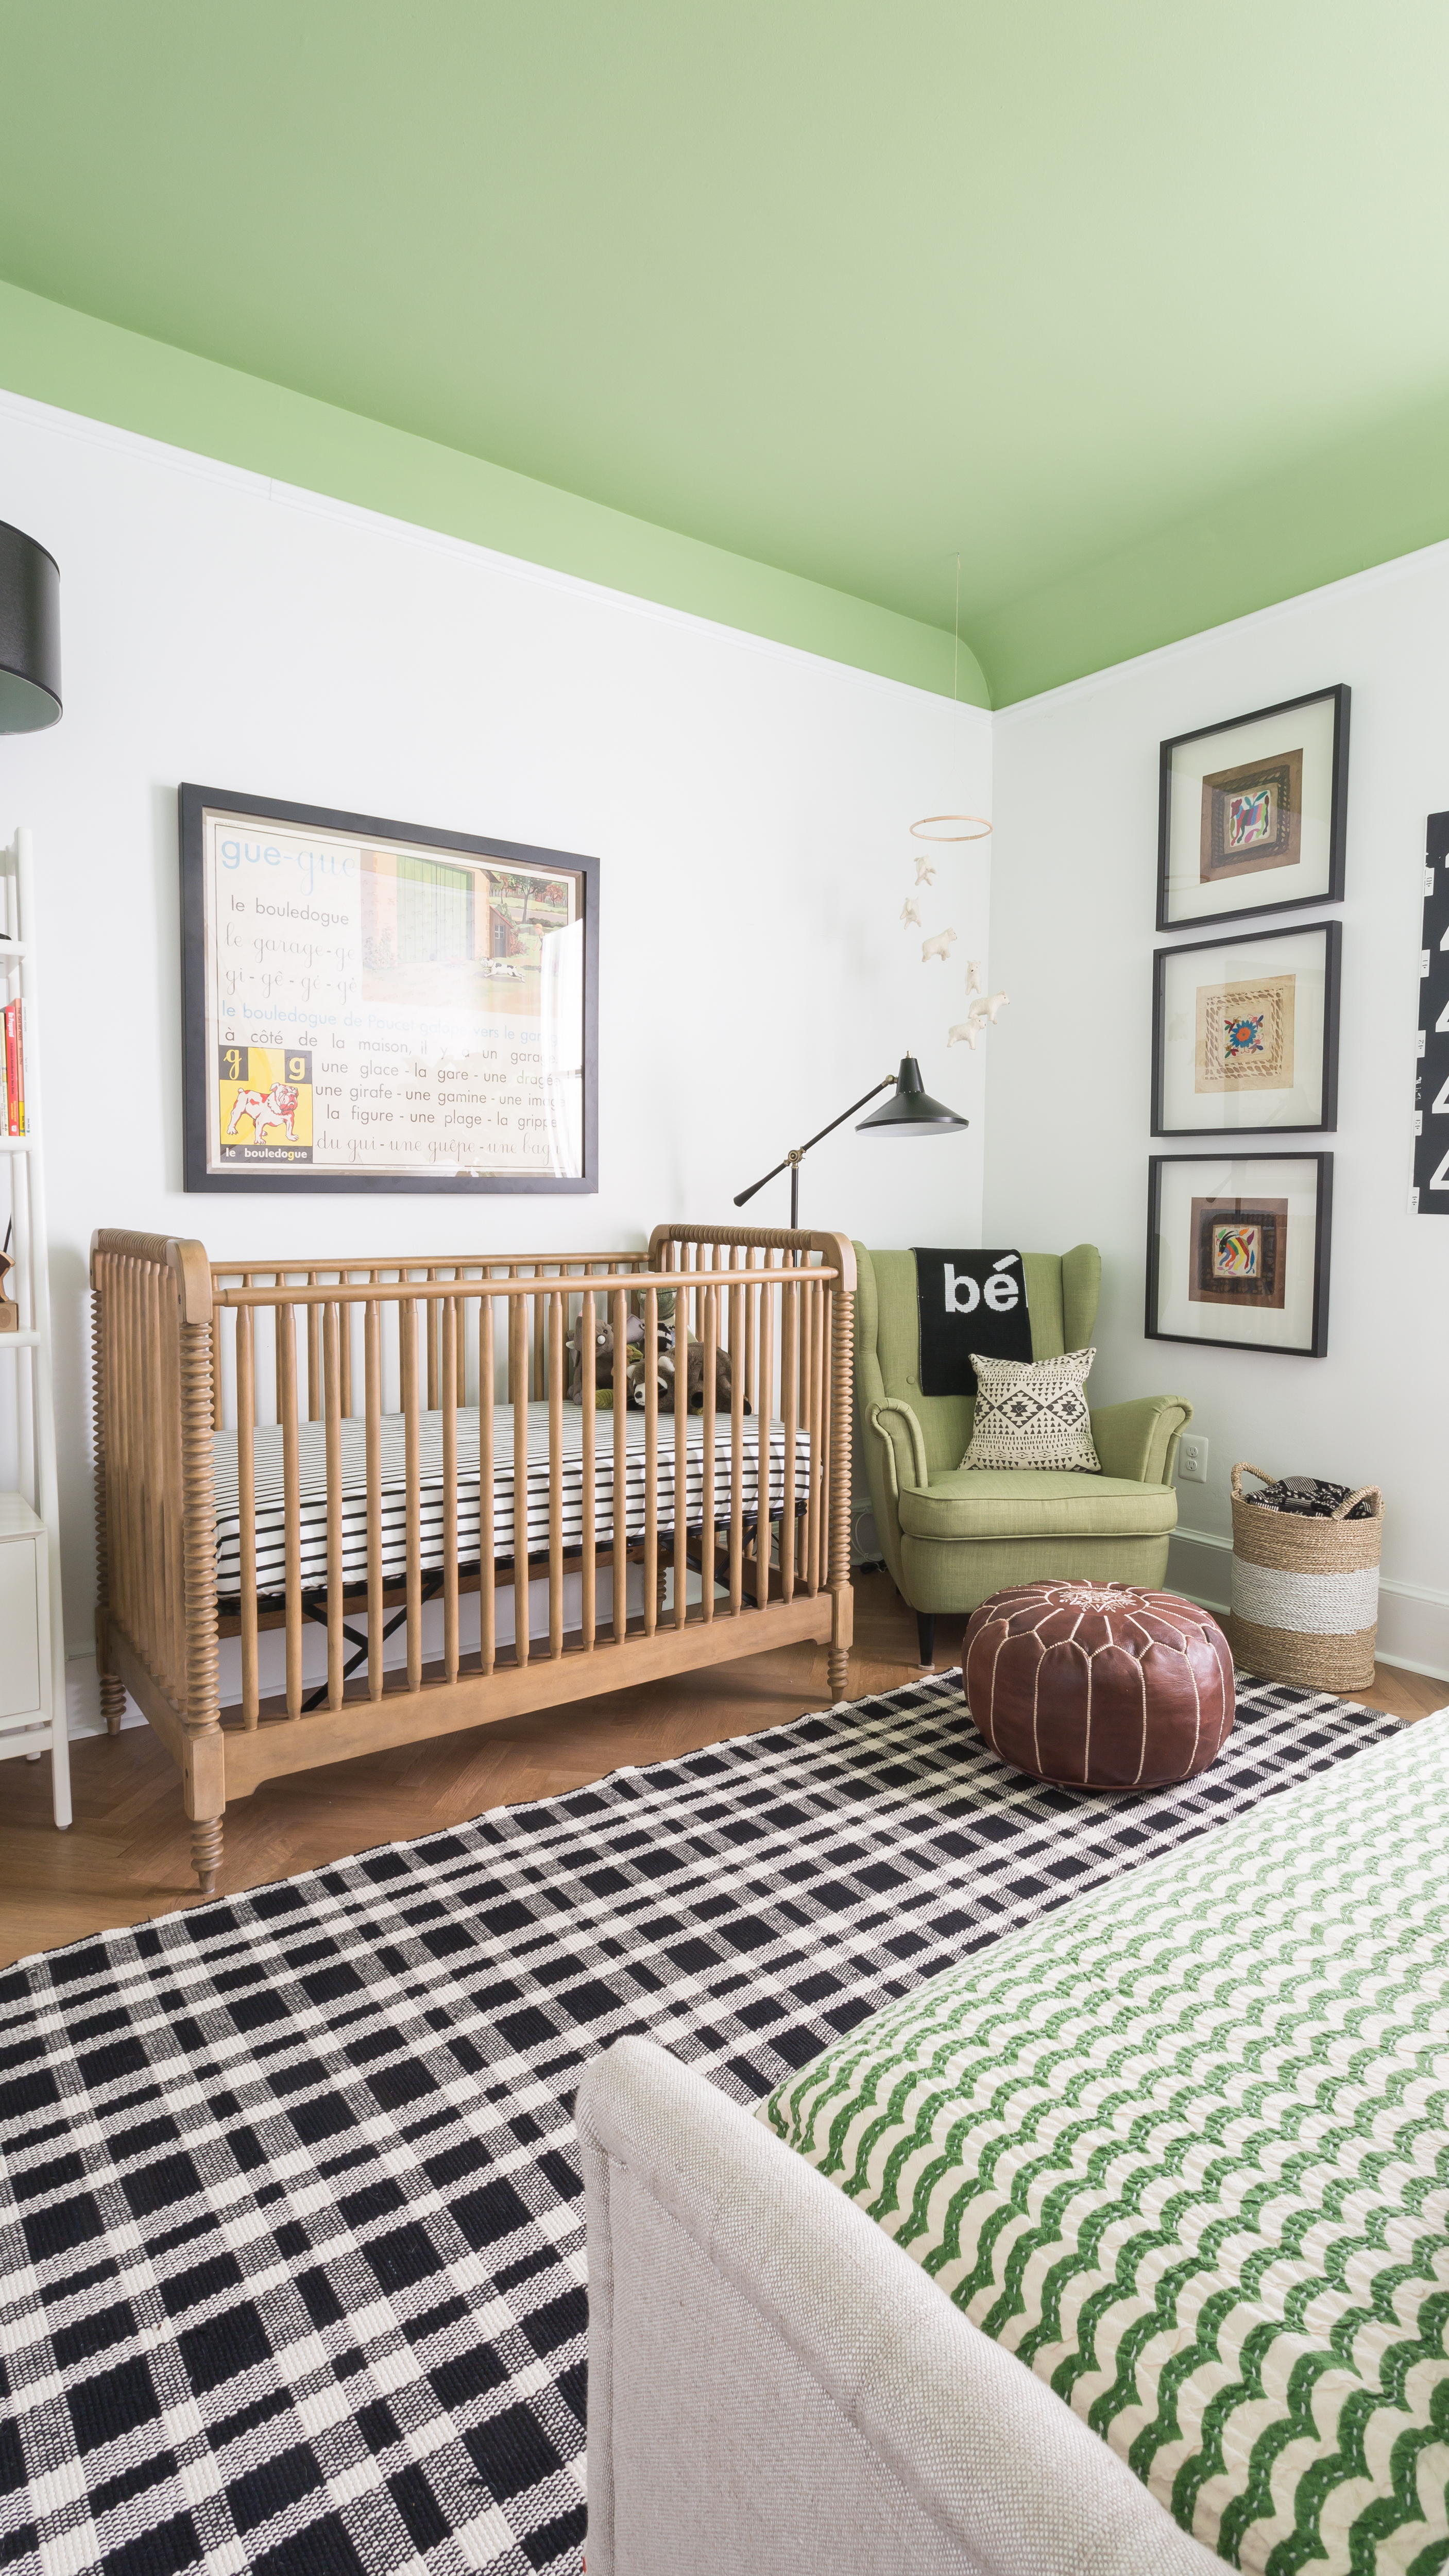 Modern Black and White Nursery with Pops of Green